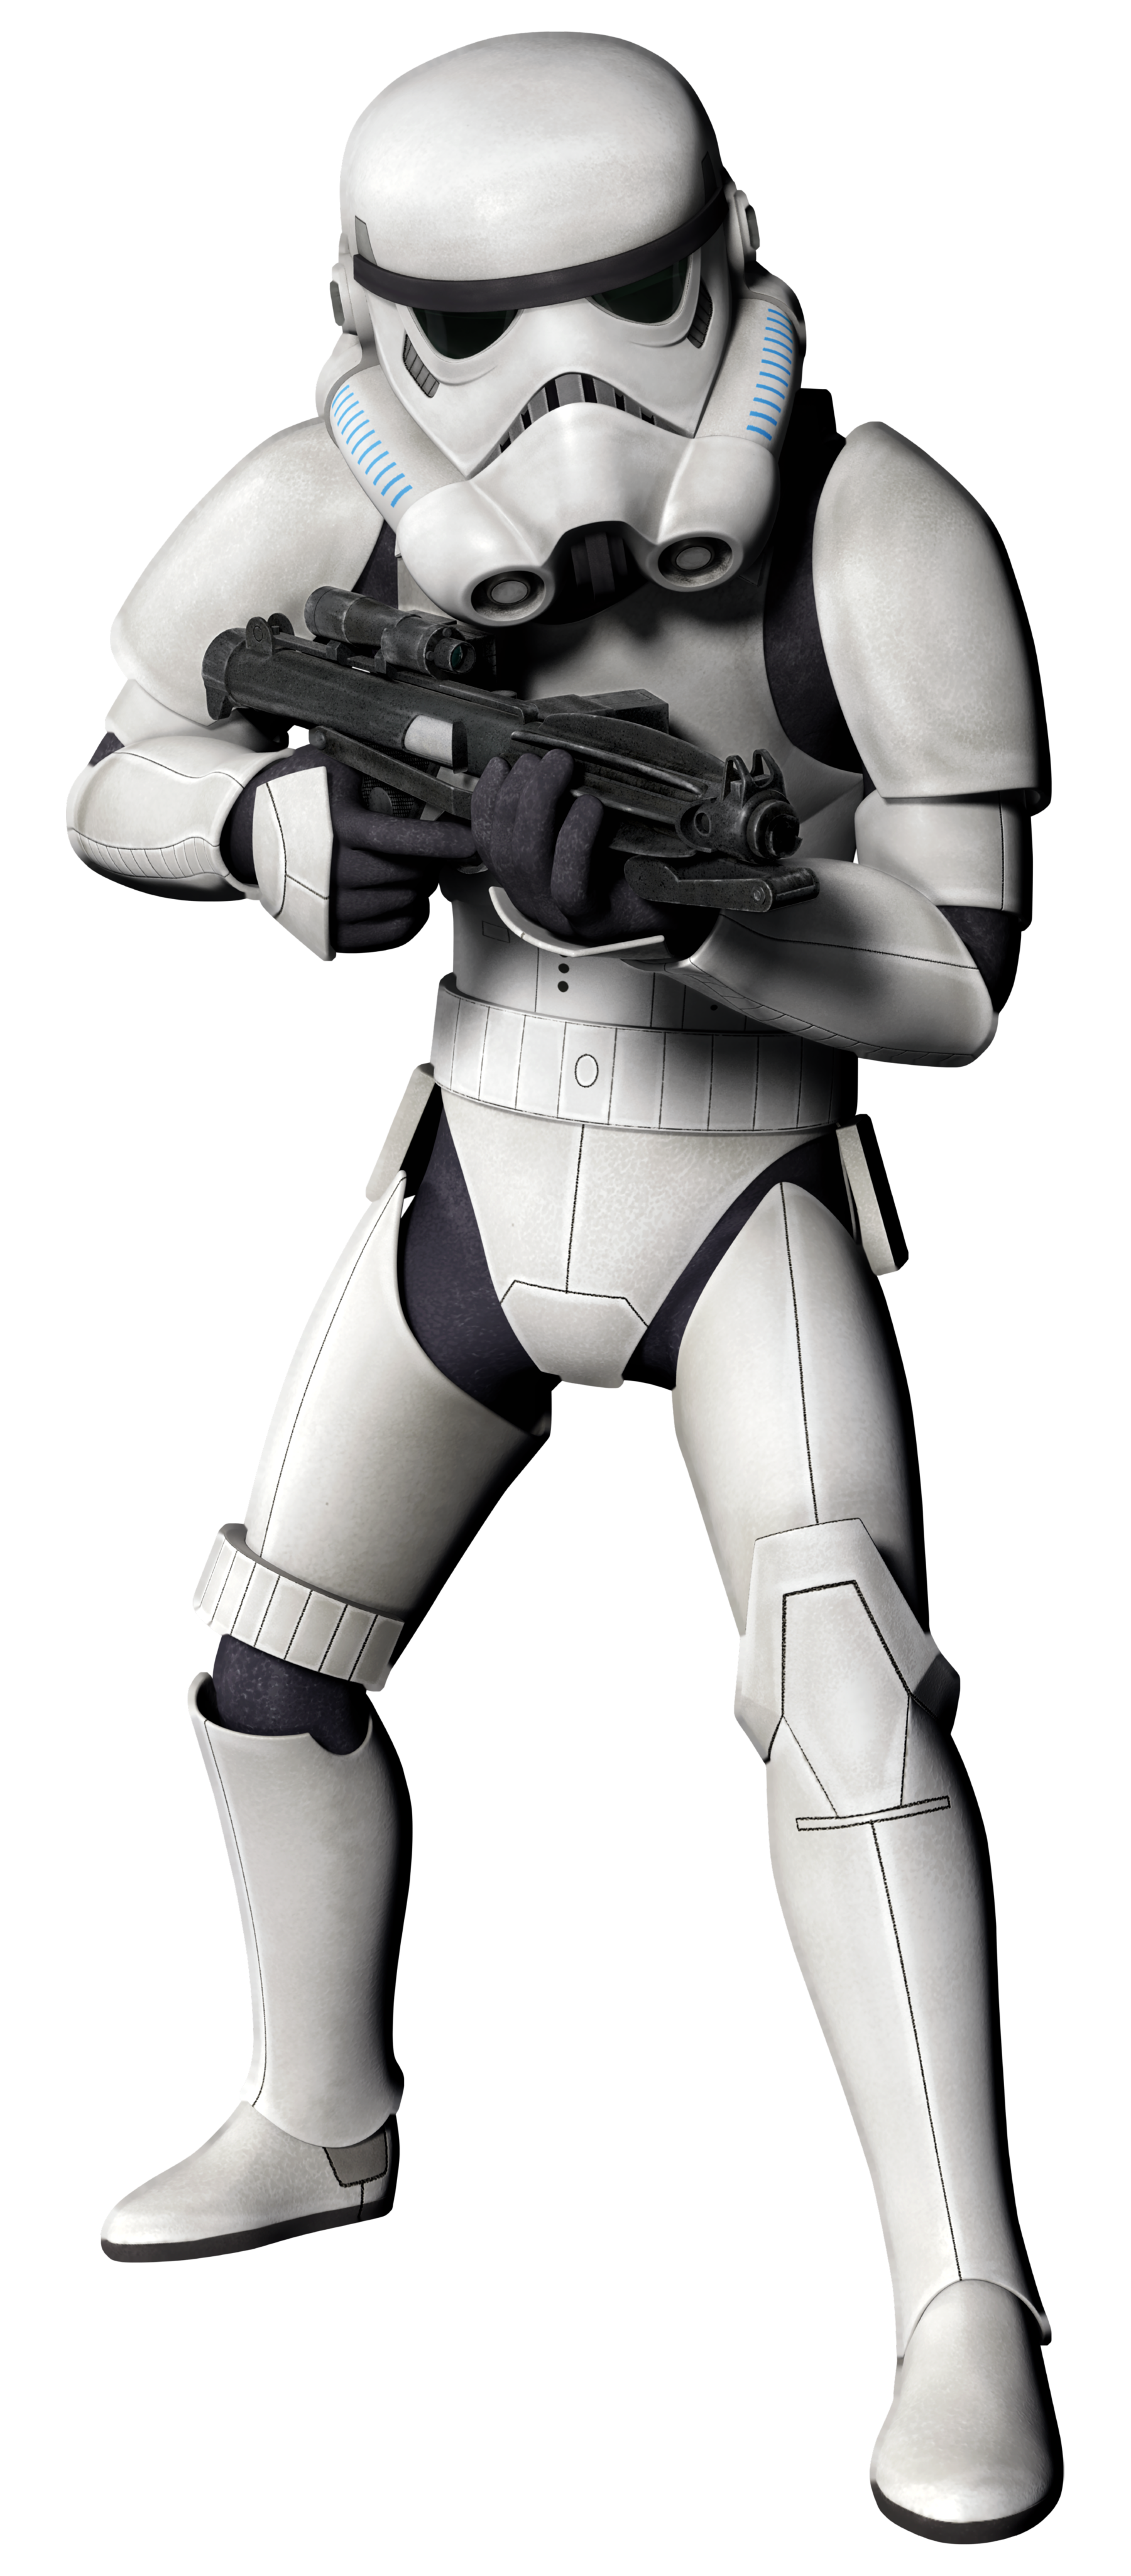 Image Stormtrooper1 Swr Fathead Png Wookieepedia